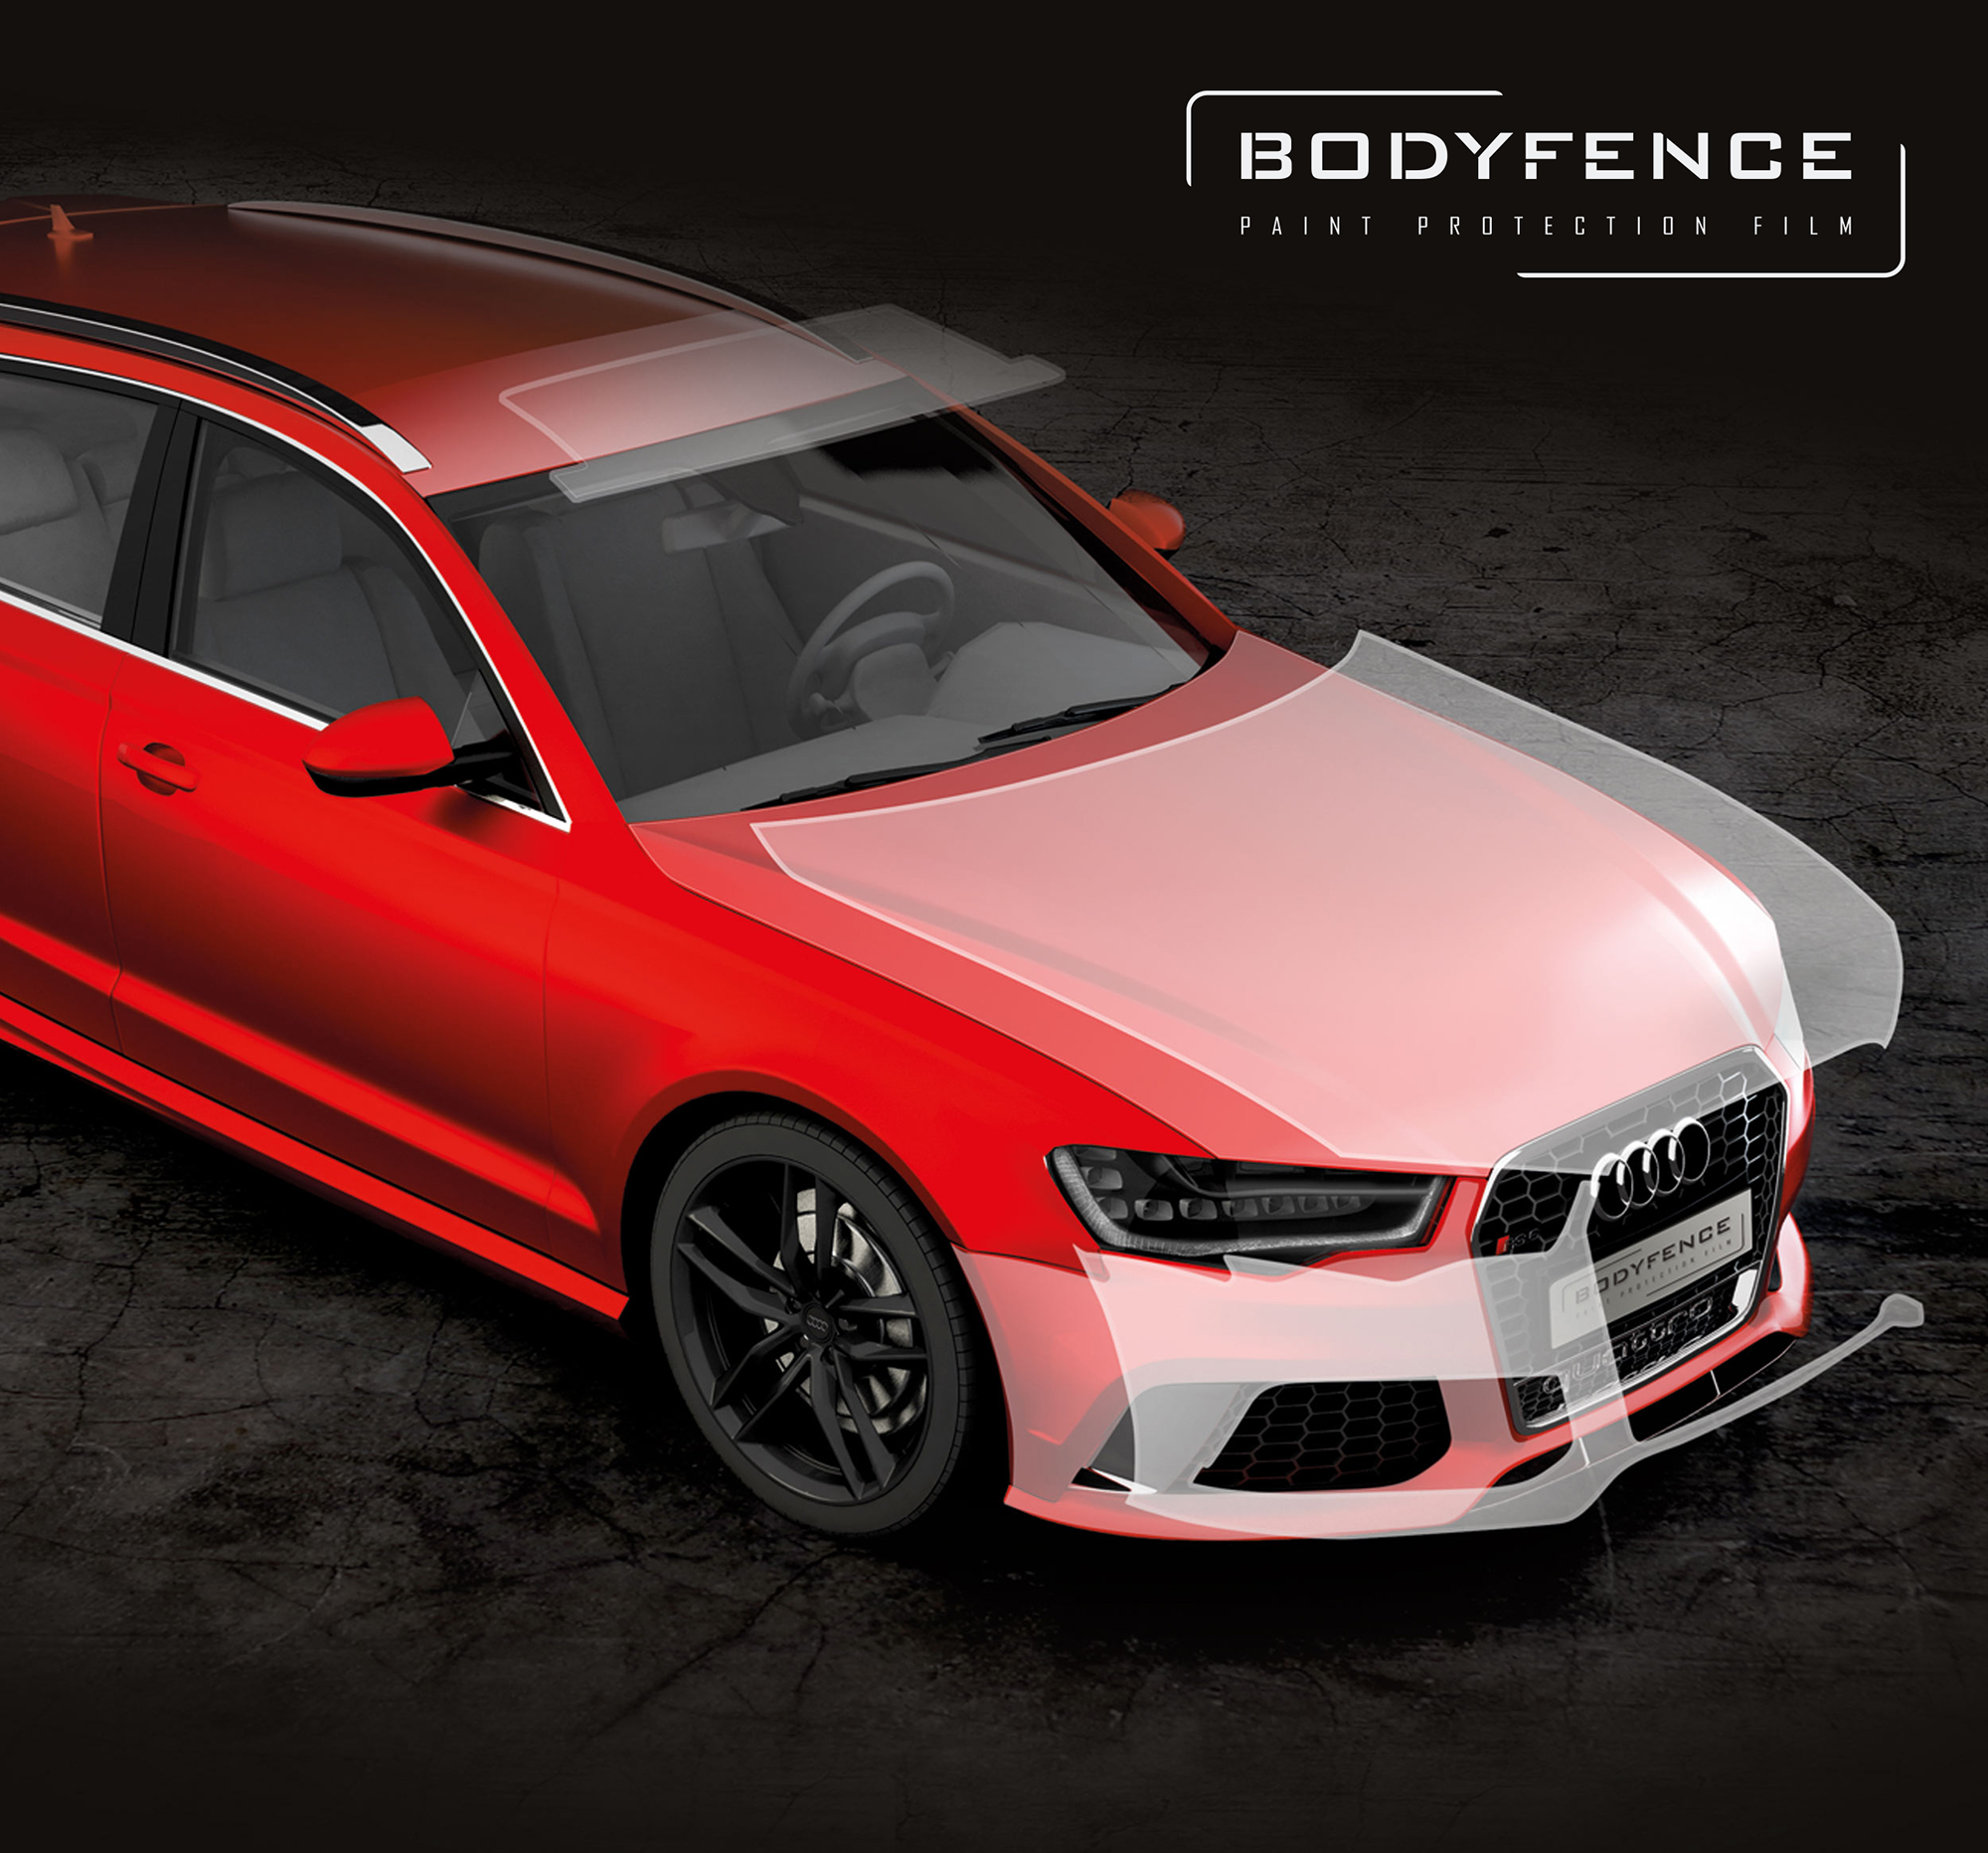 Bodyfencem Paint Protection Film Hexis Graphics